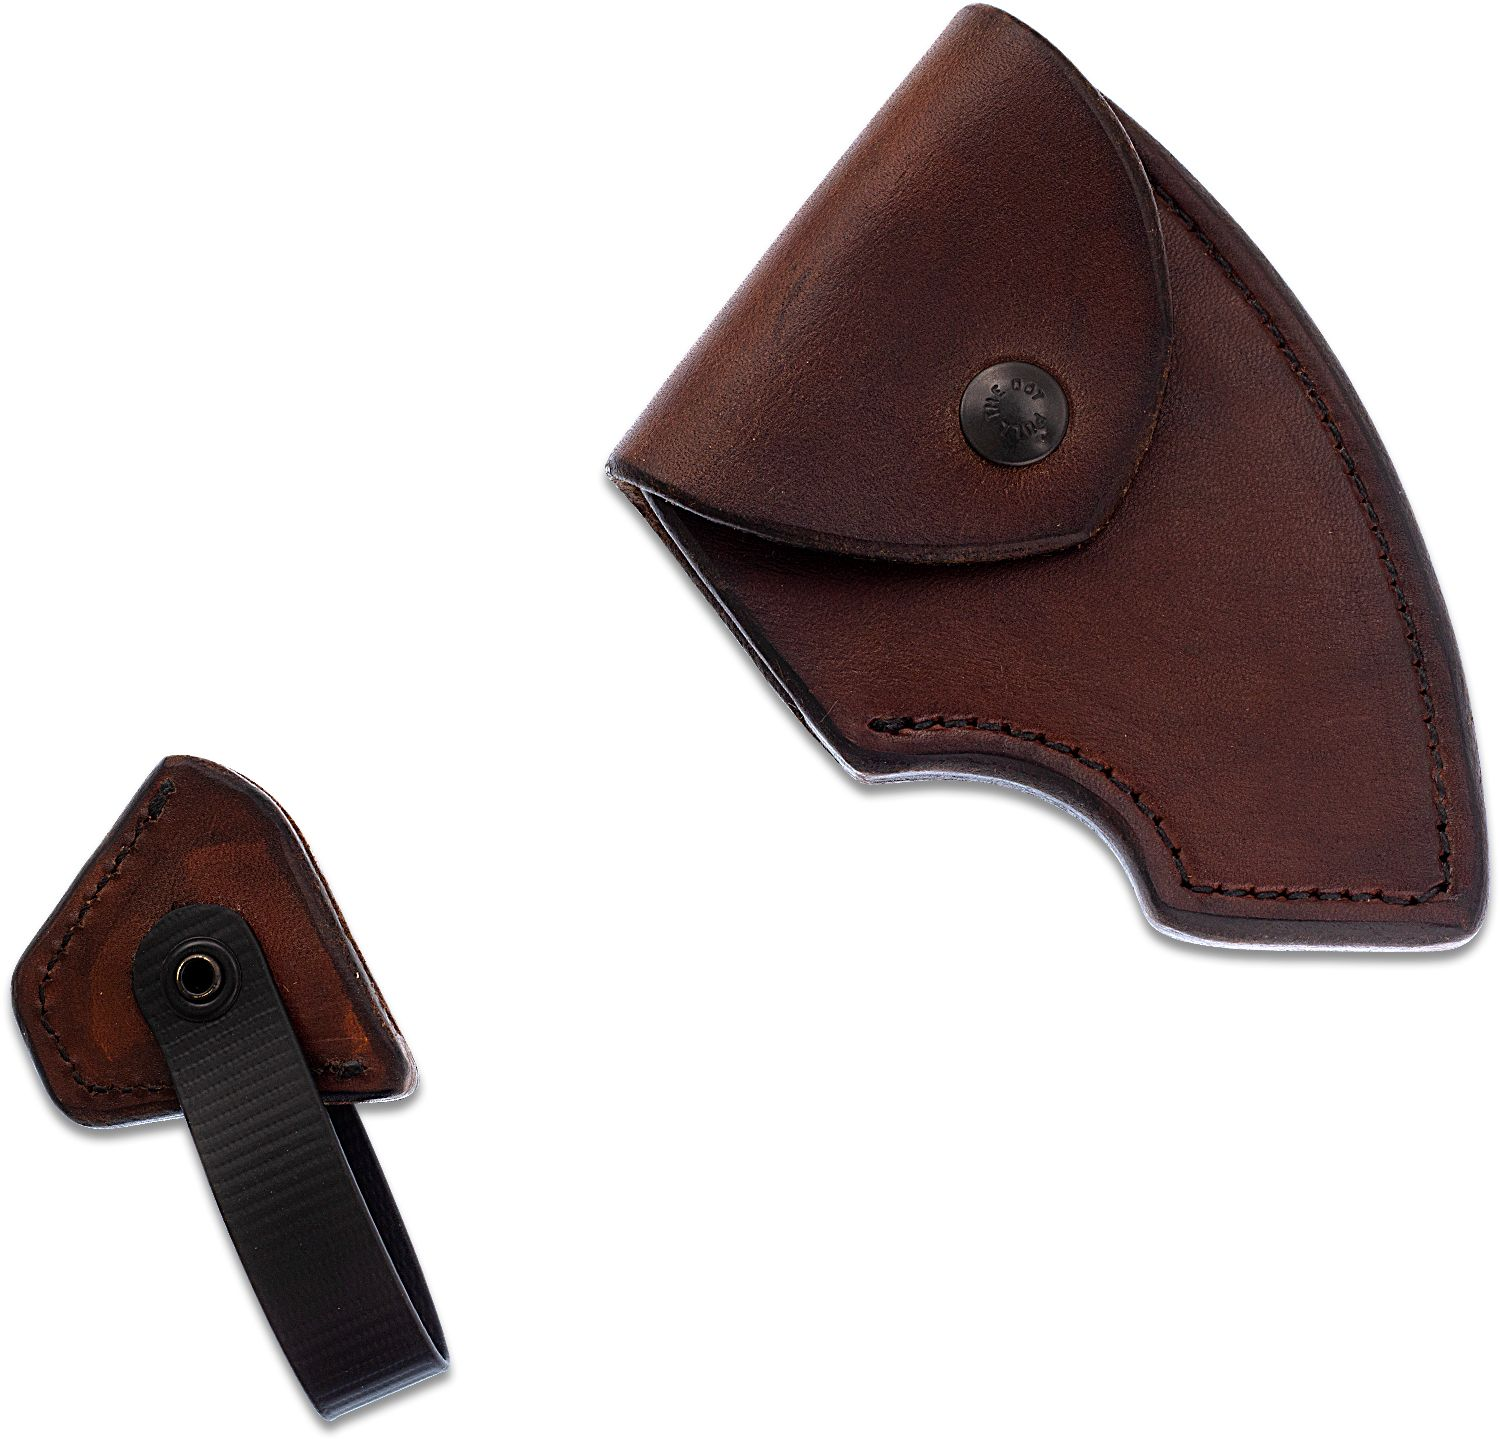 RMJ Tactical Brown Leather Edge Cover for the Berserker Tomahawk, Sheath Only